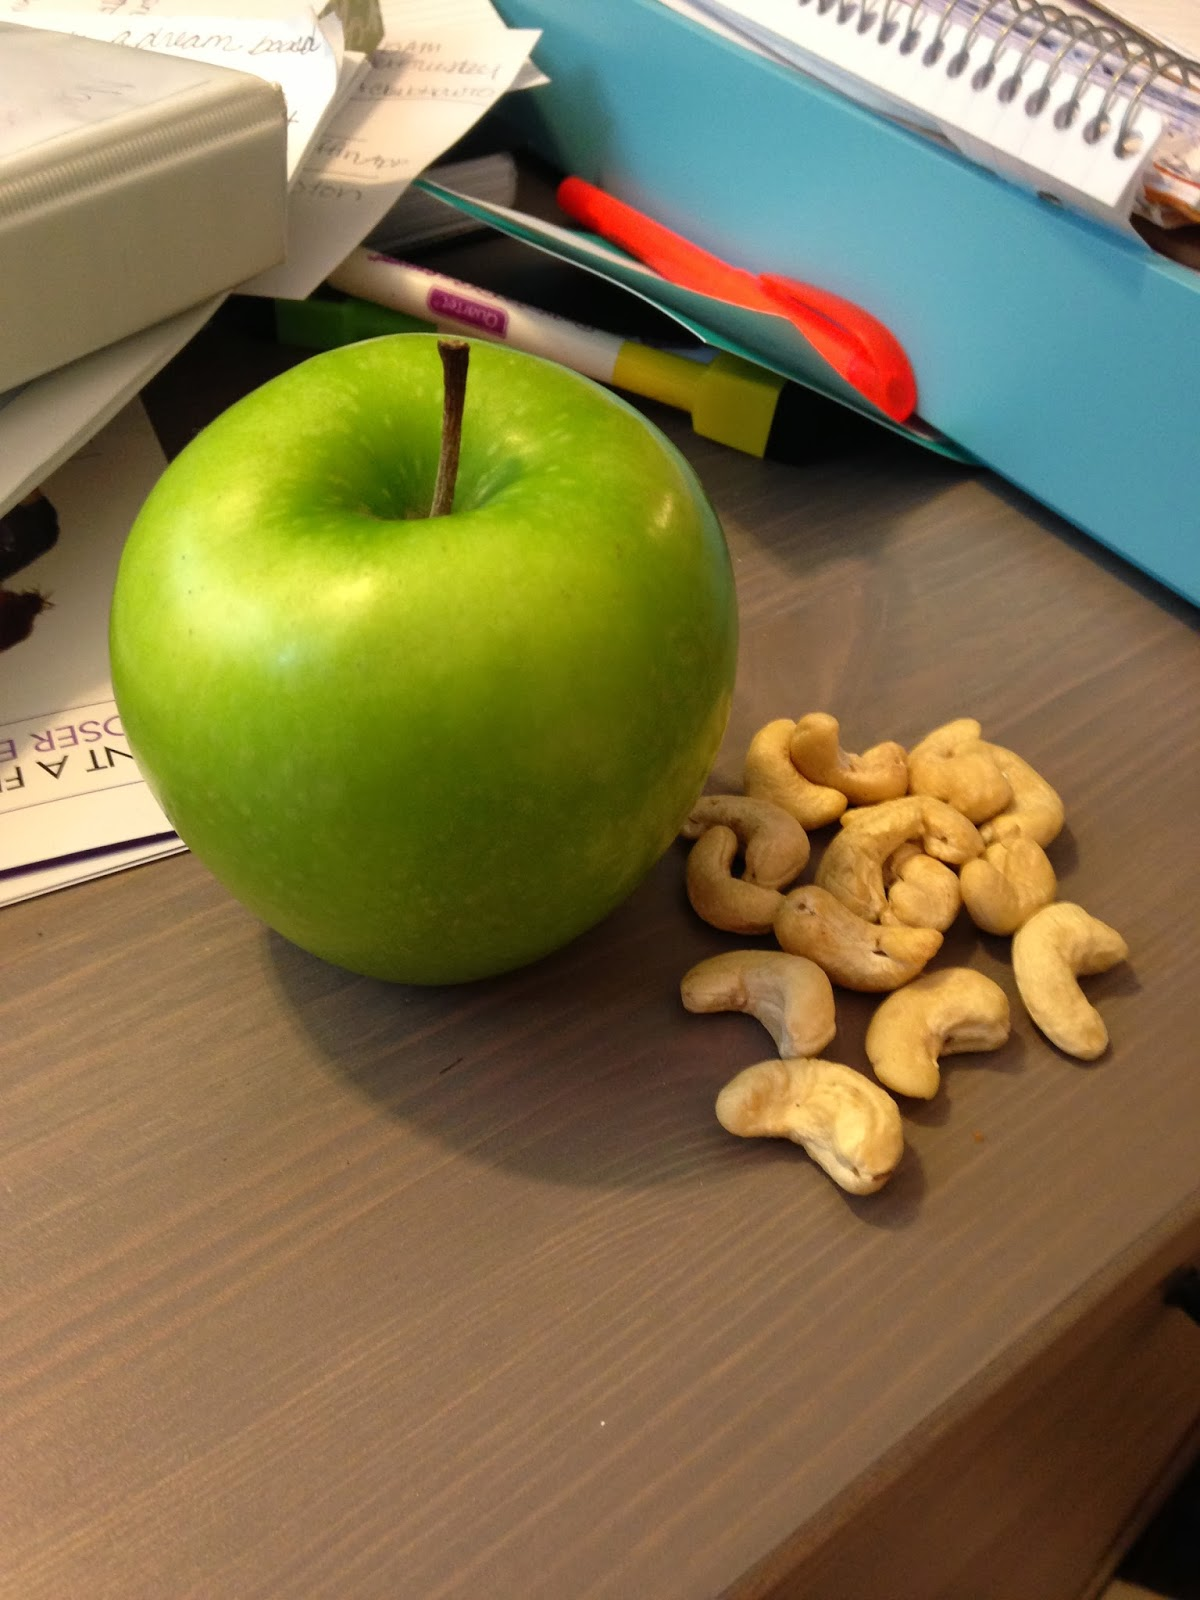 21 Day fix Snack Ideas, Apple and Cashews